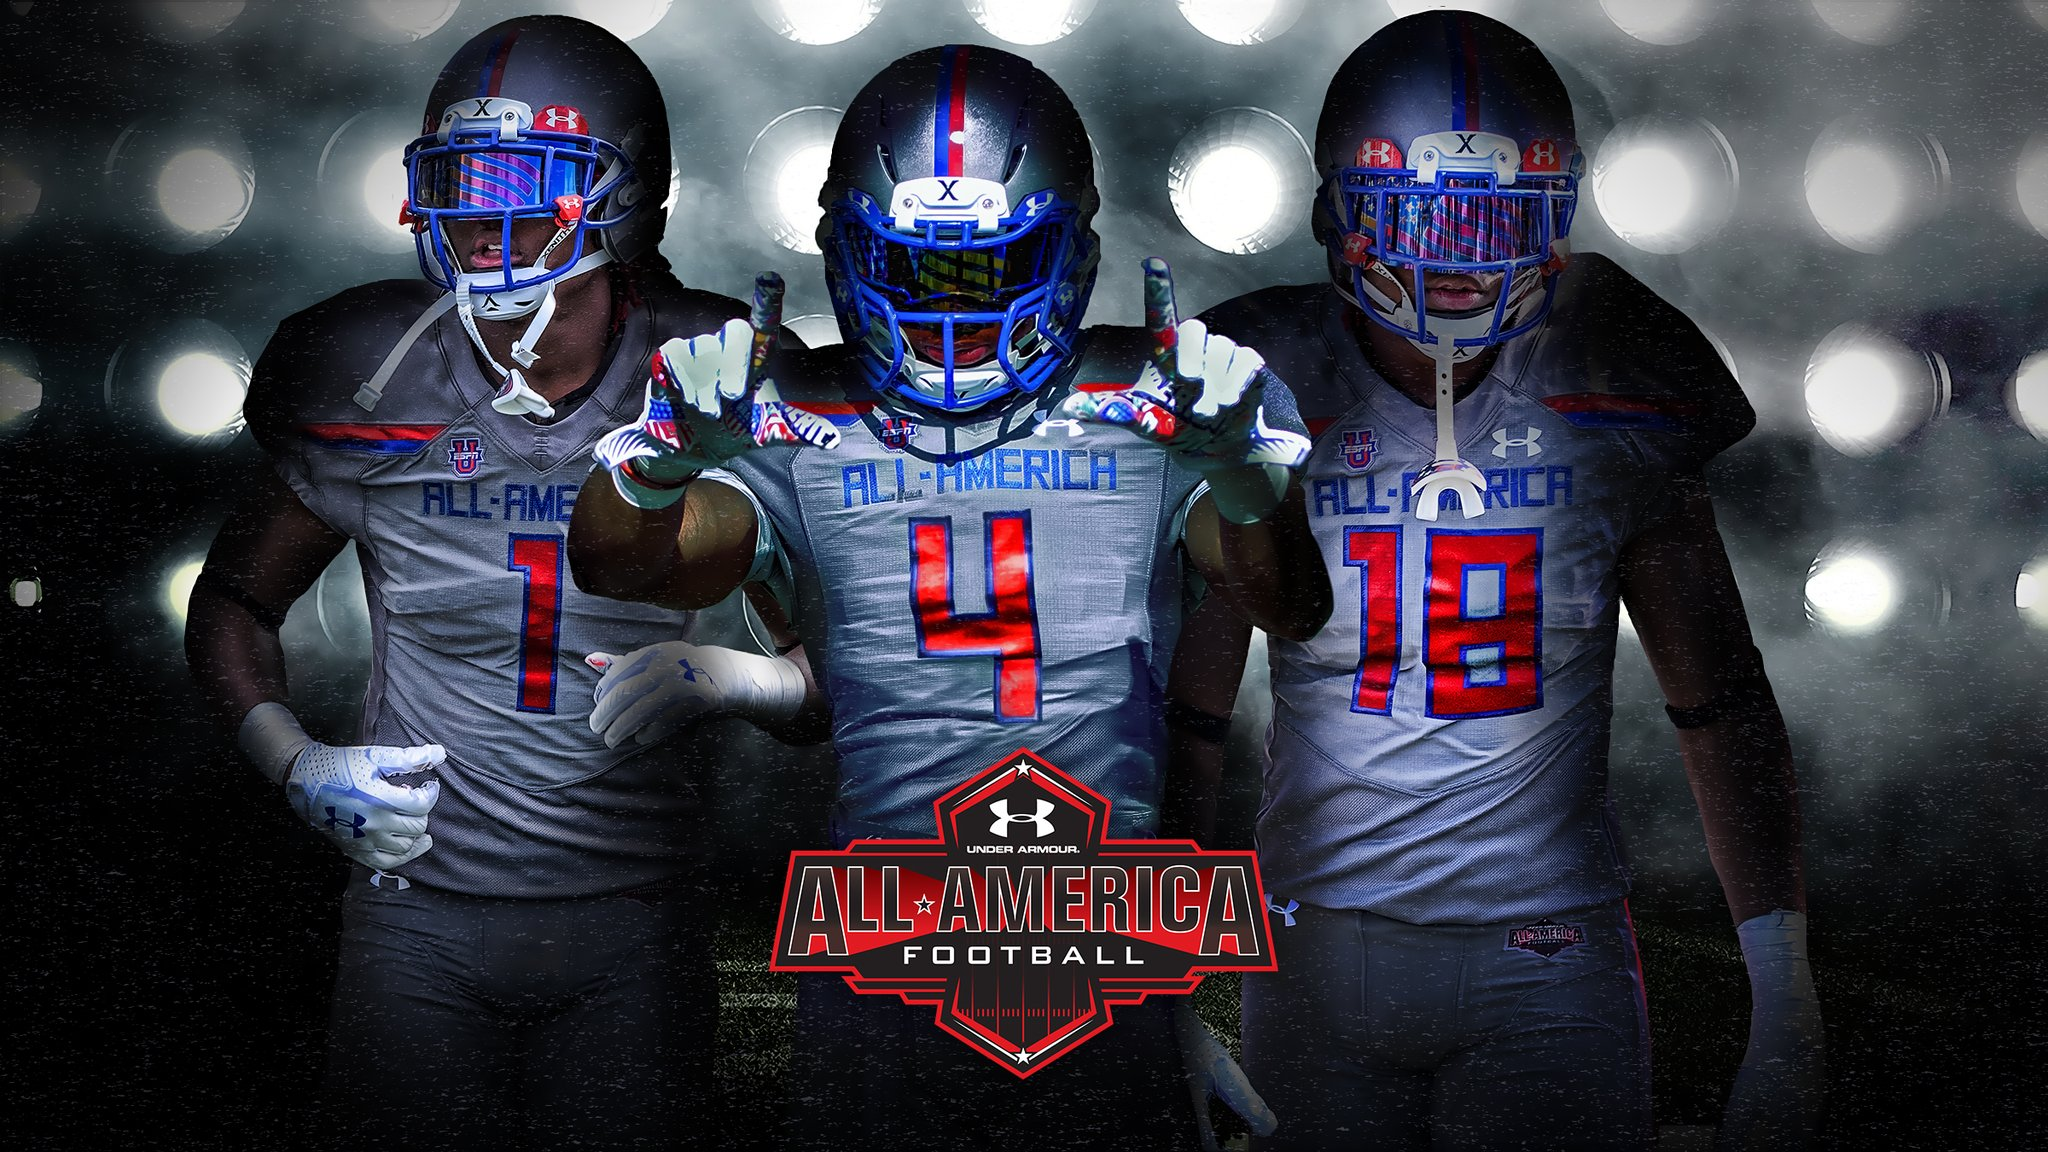 Under Armour and U.S. ARMY All America Football Team VR Experience